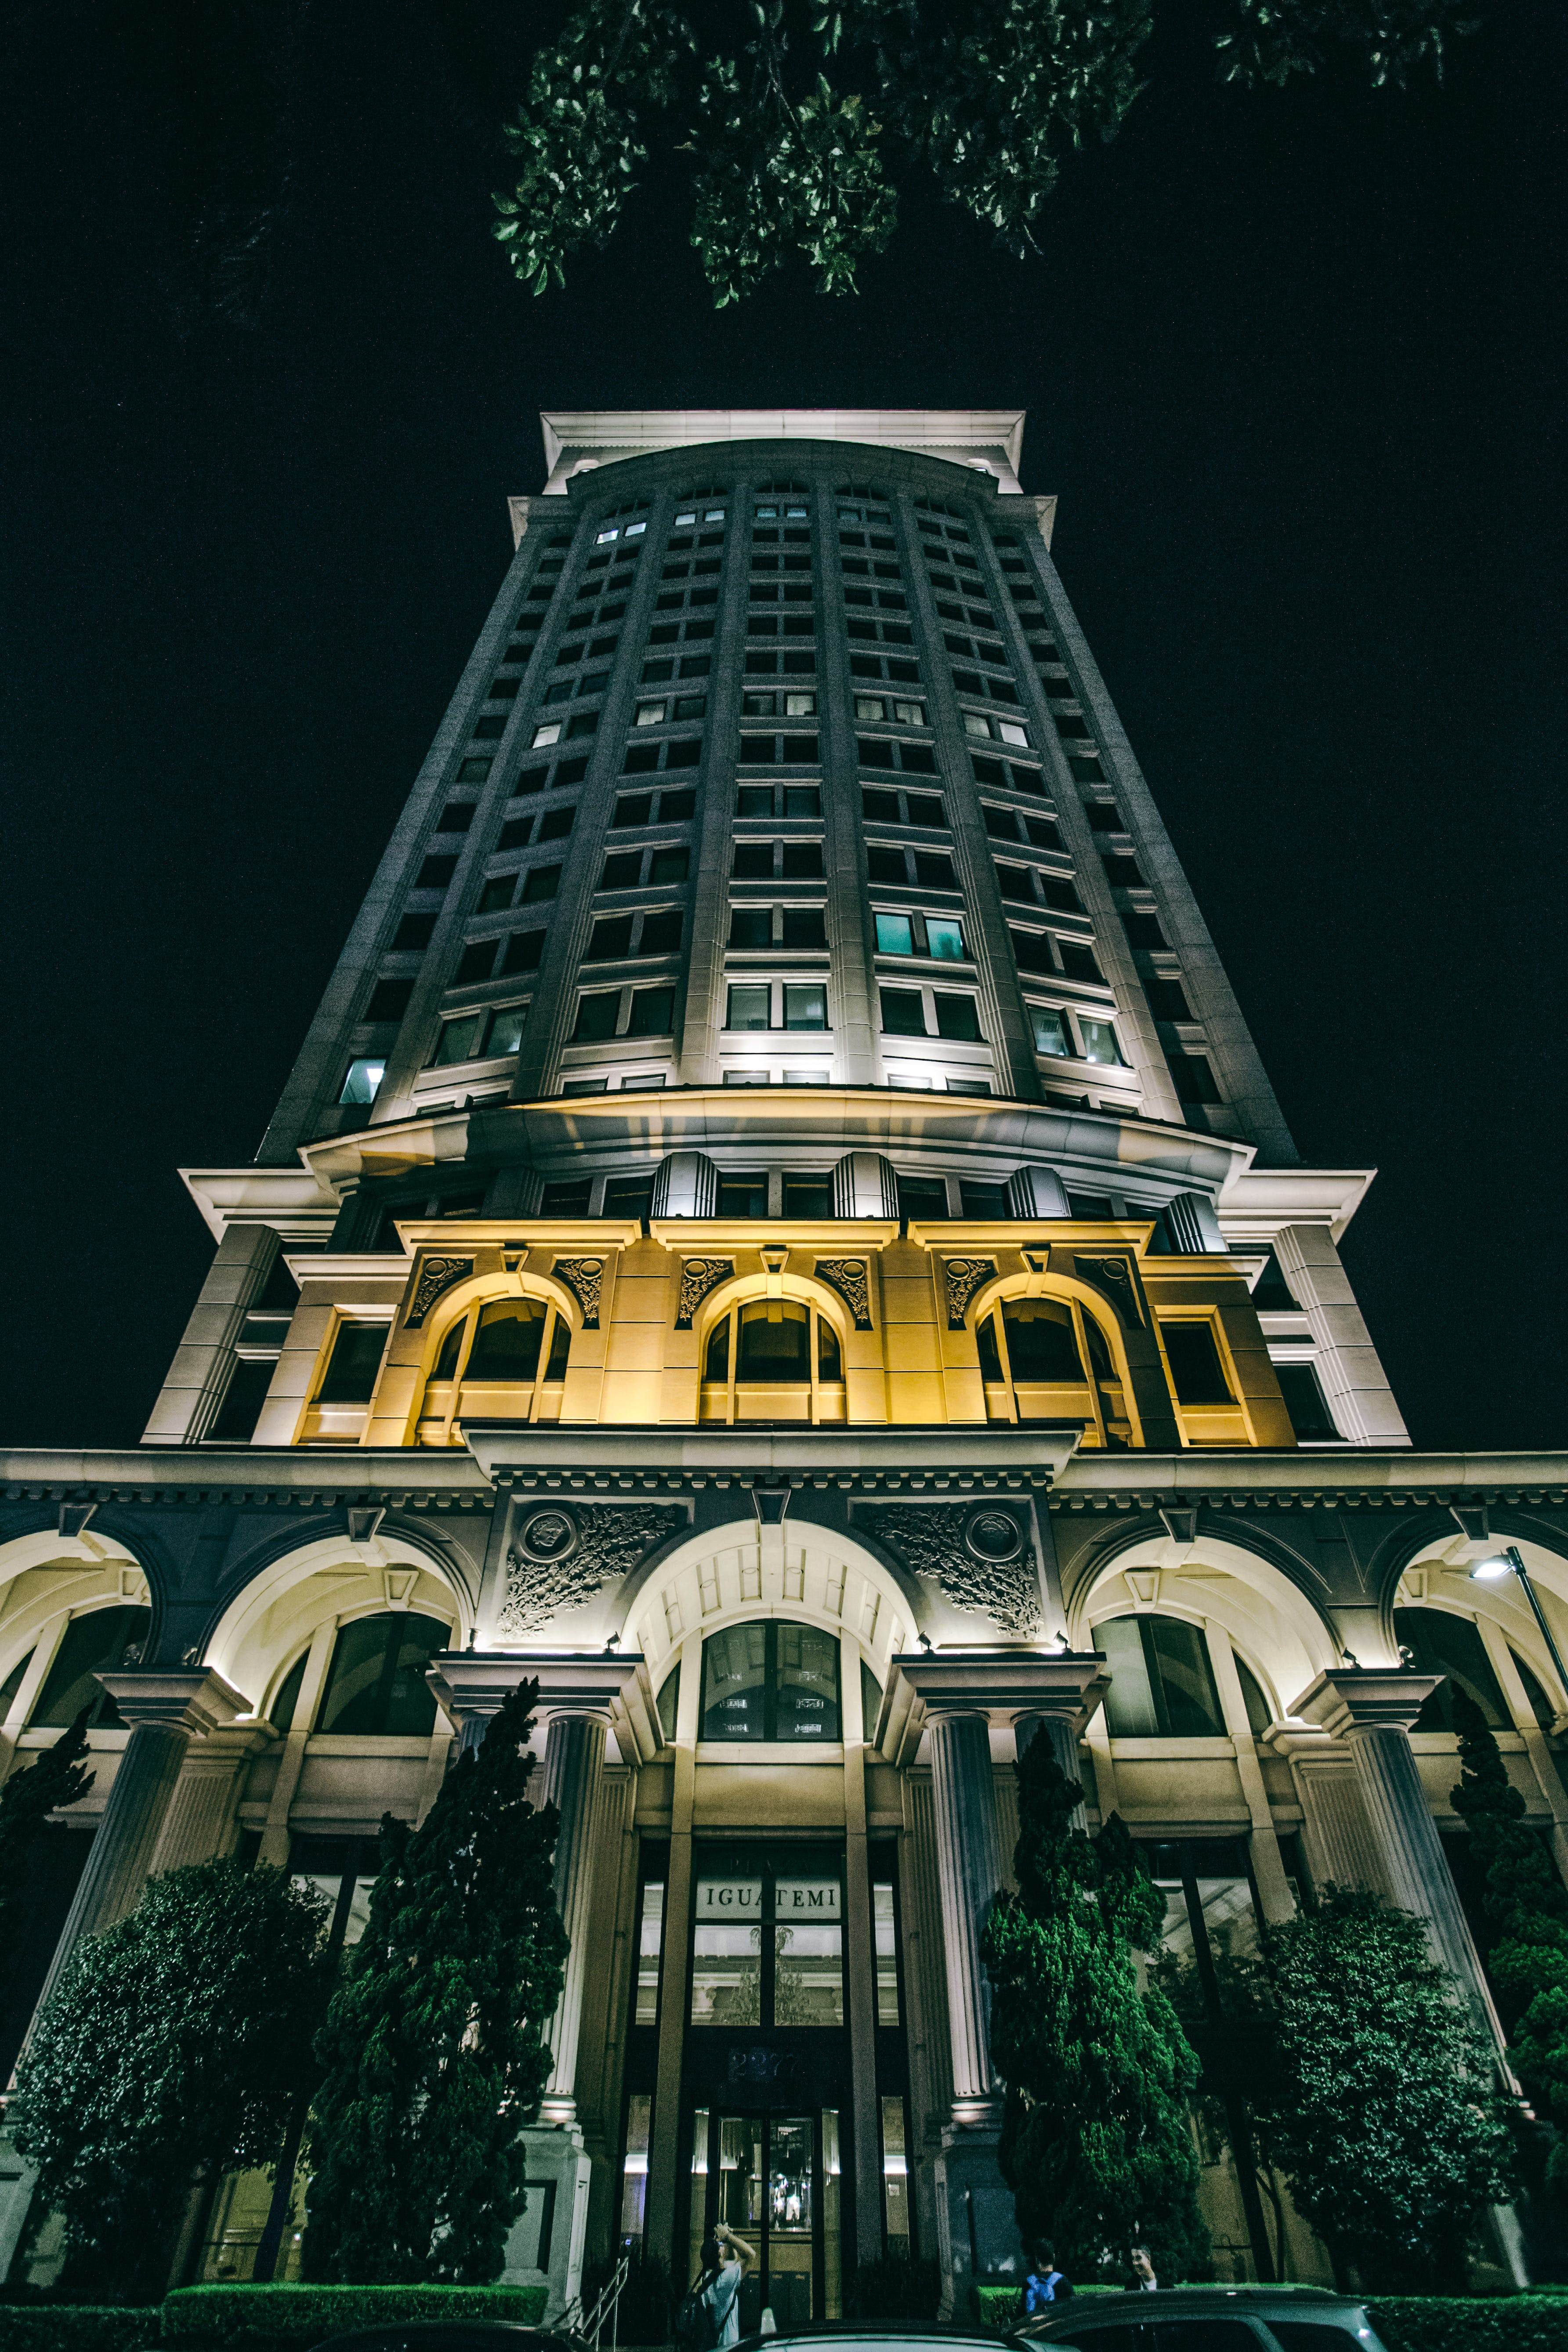 Low Angle Photography of High-rise Building at Night